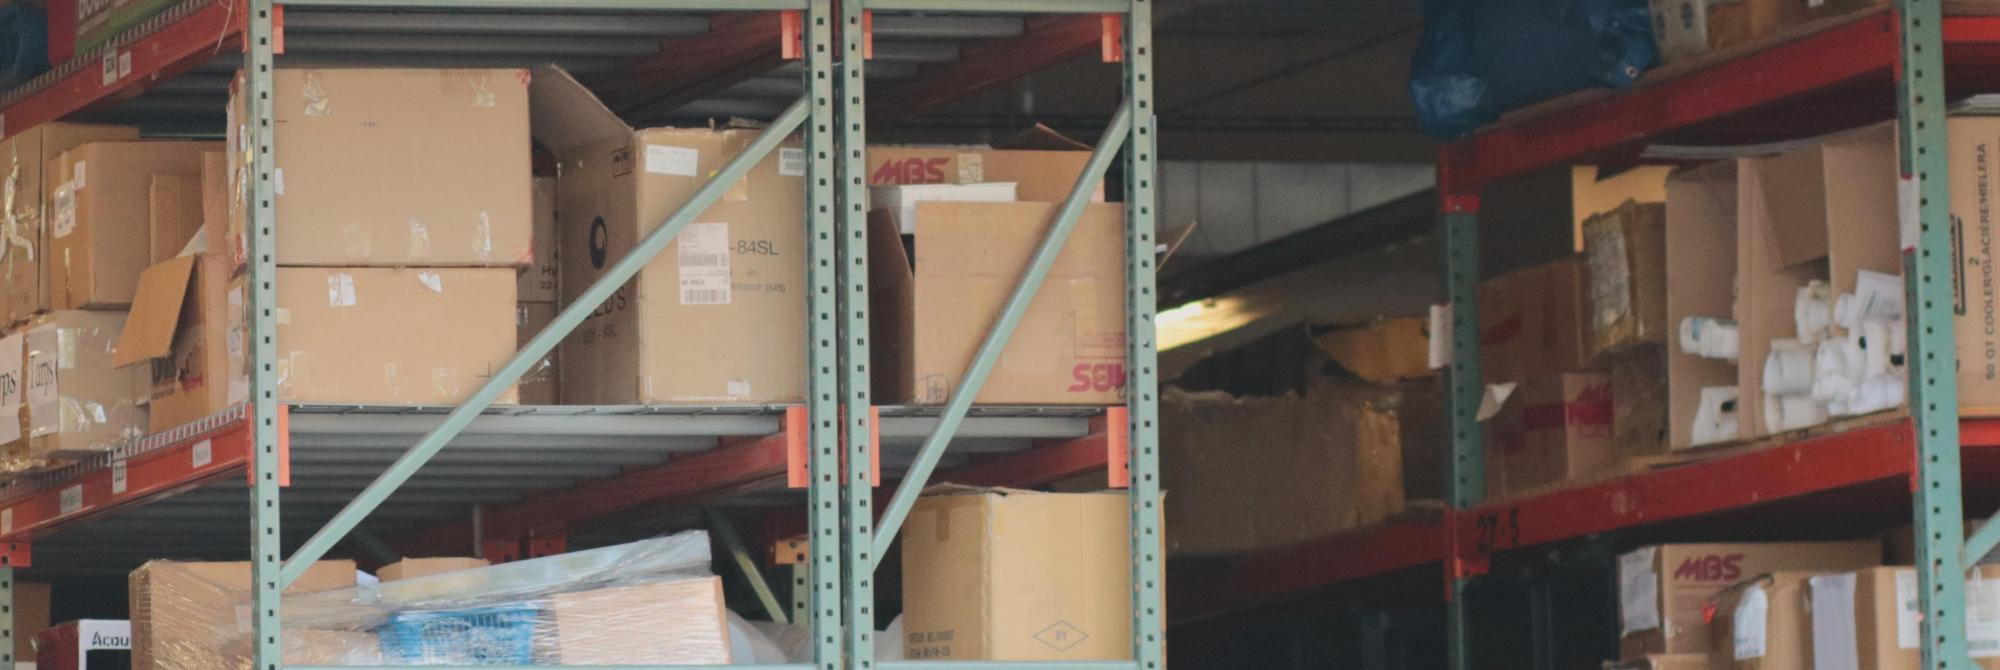 Stacks of shipping boxes